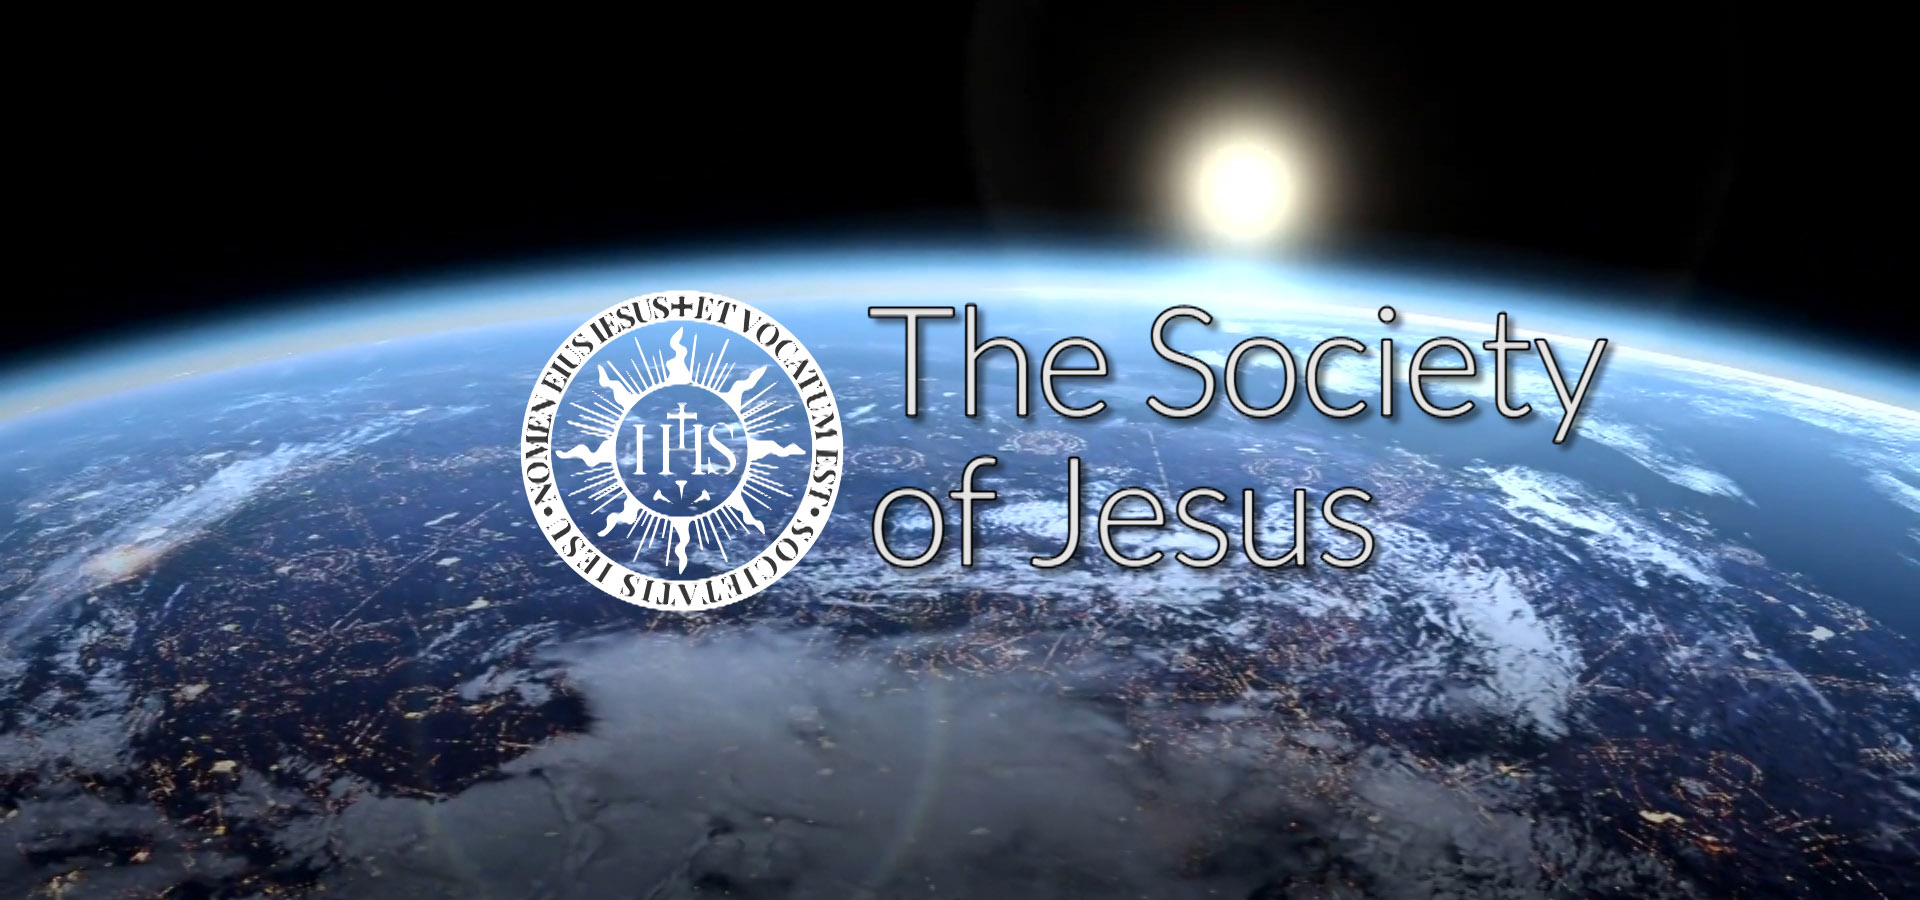 Fully welcomed into the Society of Jesus